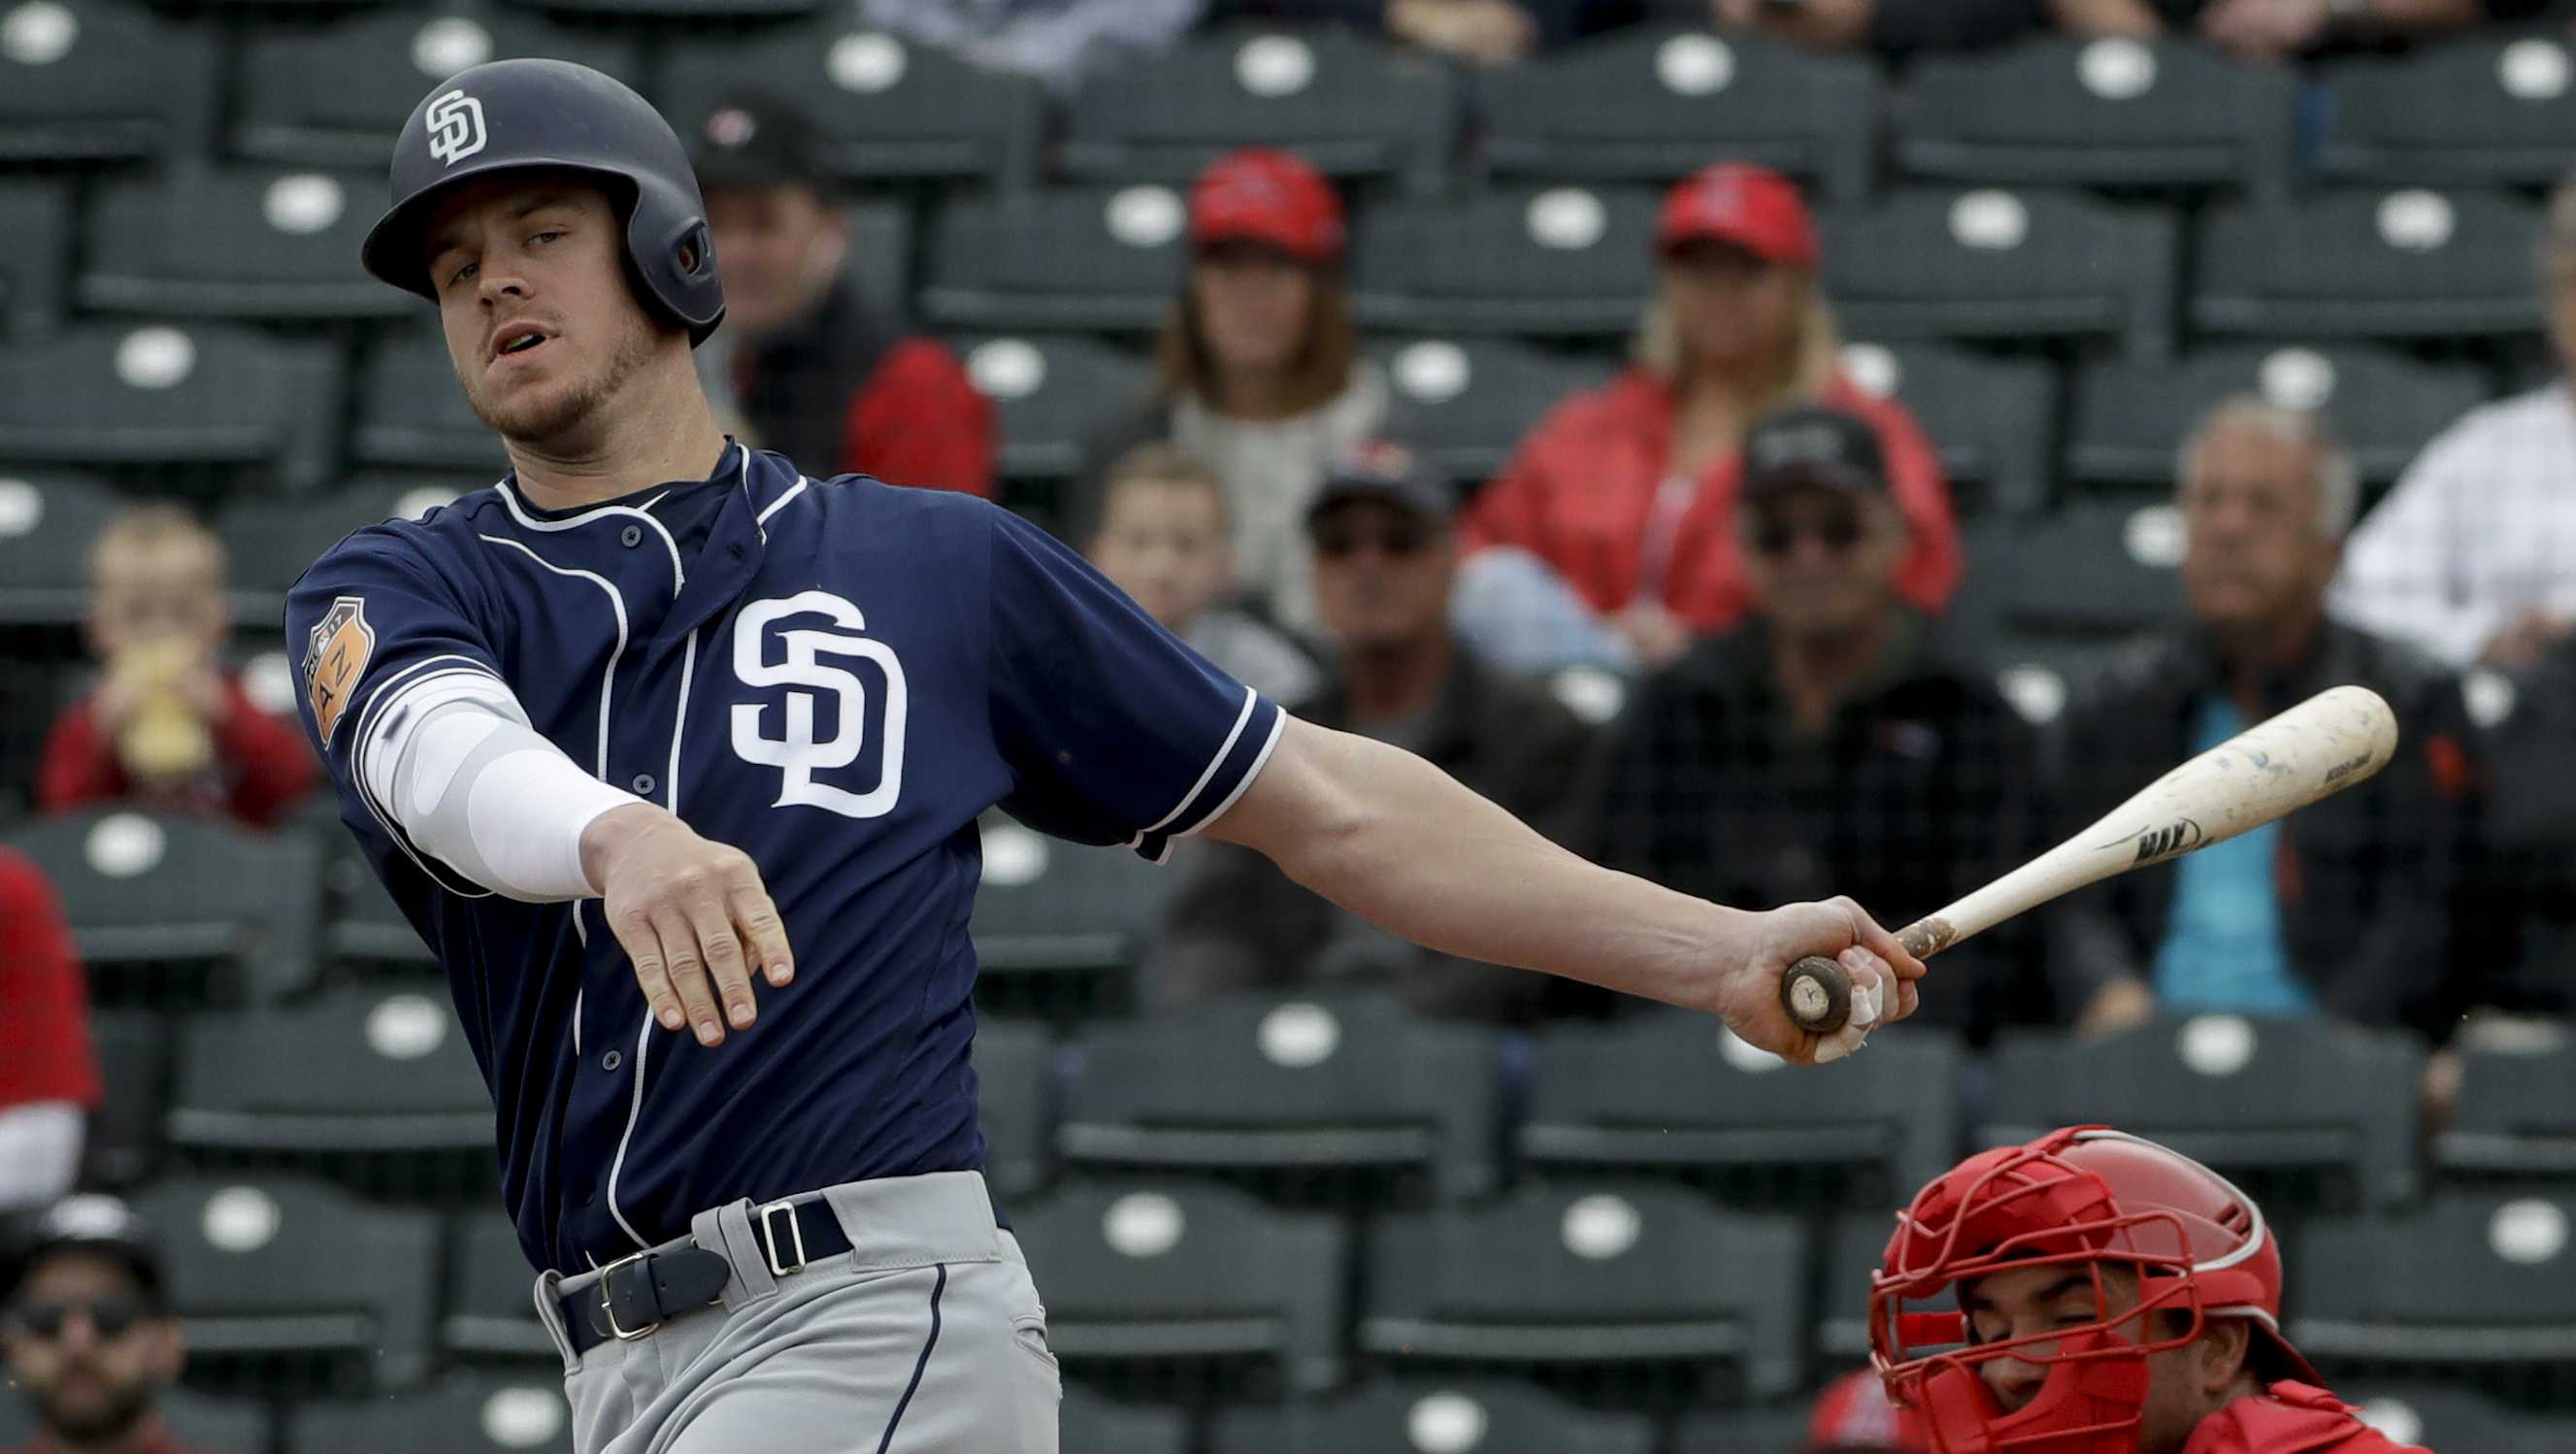 San Diego Padres' Wil Myers bats against the Los Angeles Angels during a spring baseball game in Tempe, Ariz., Monday, Feb. 27, 2017.